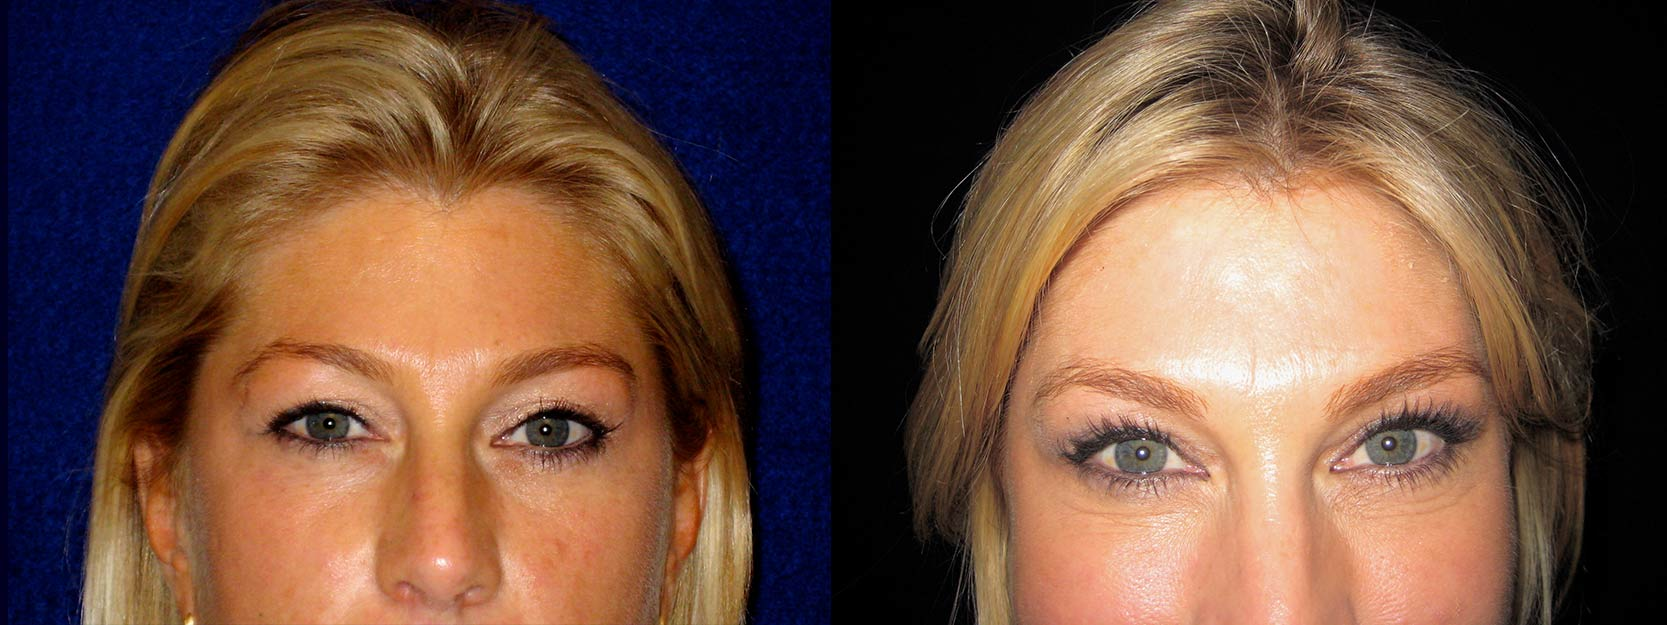 Fontal View - Upper Eyelid Surgery